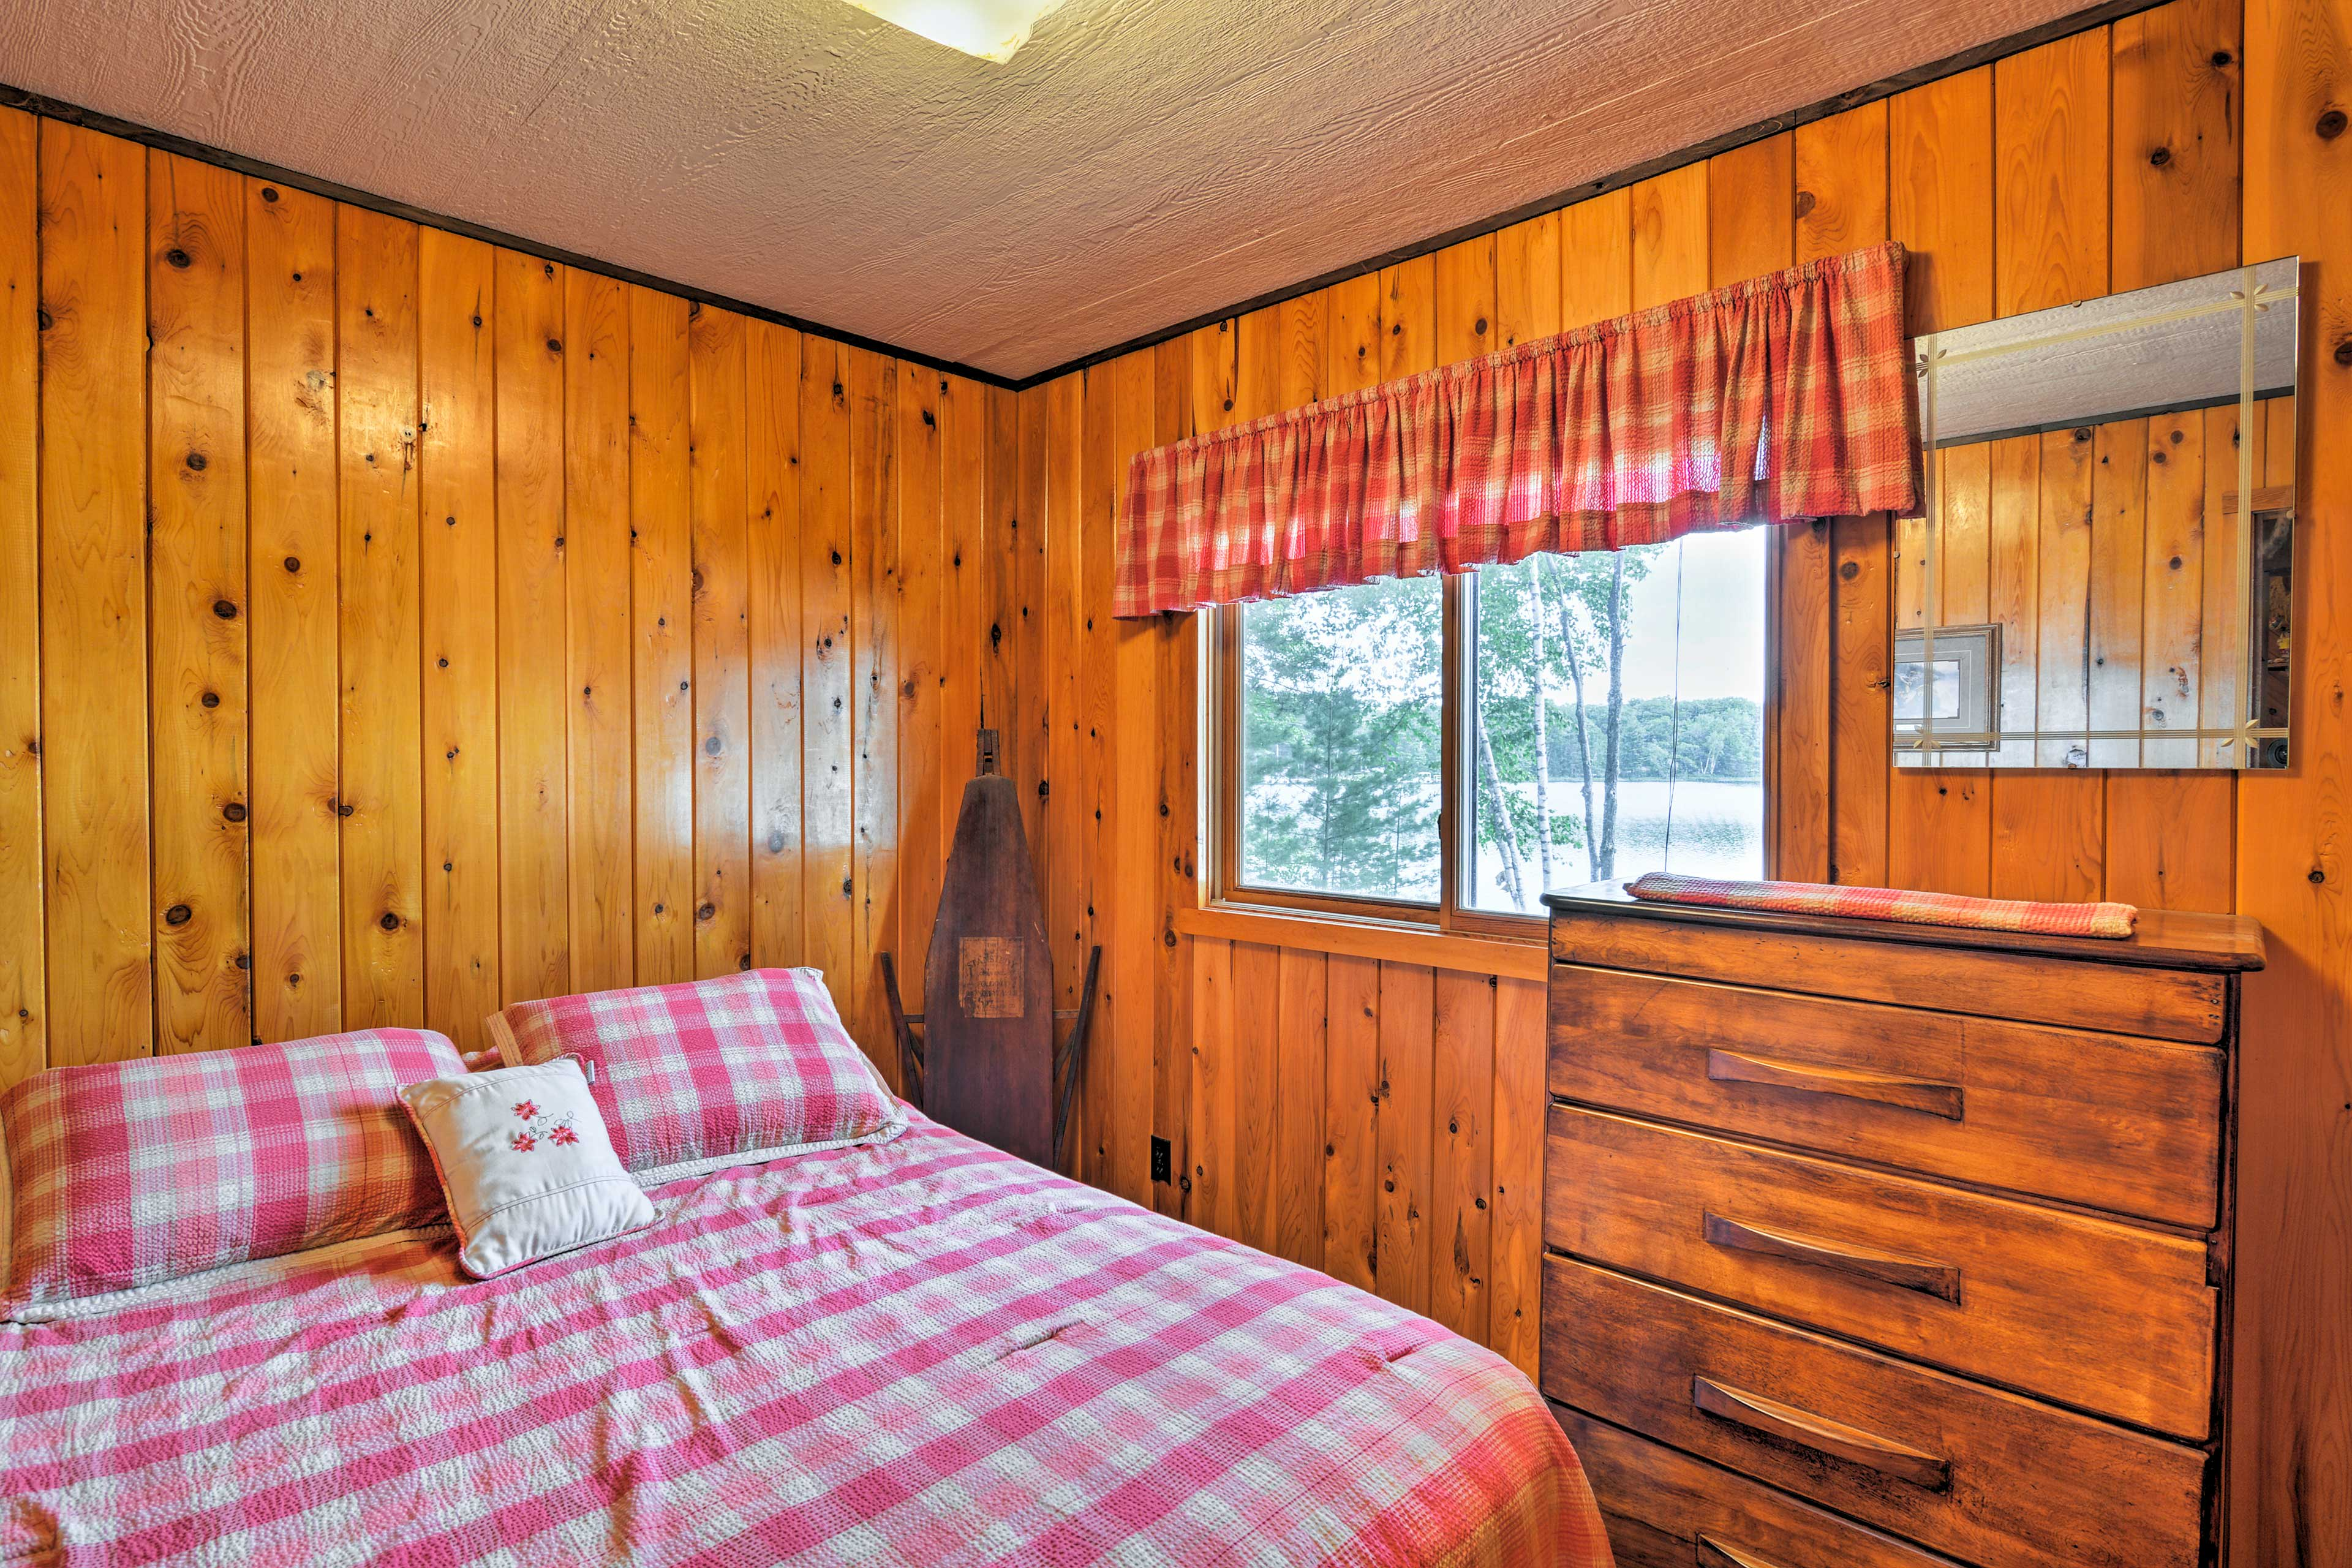 The master bedroom boasts a queen bed and views of Gooseneck Lake.